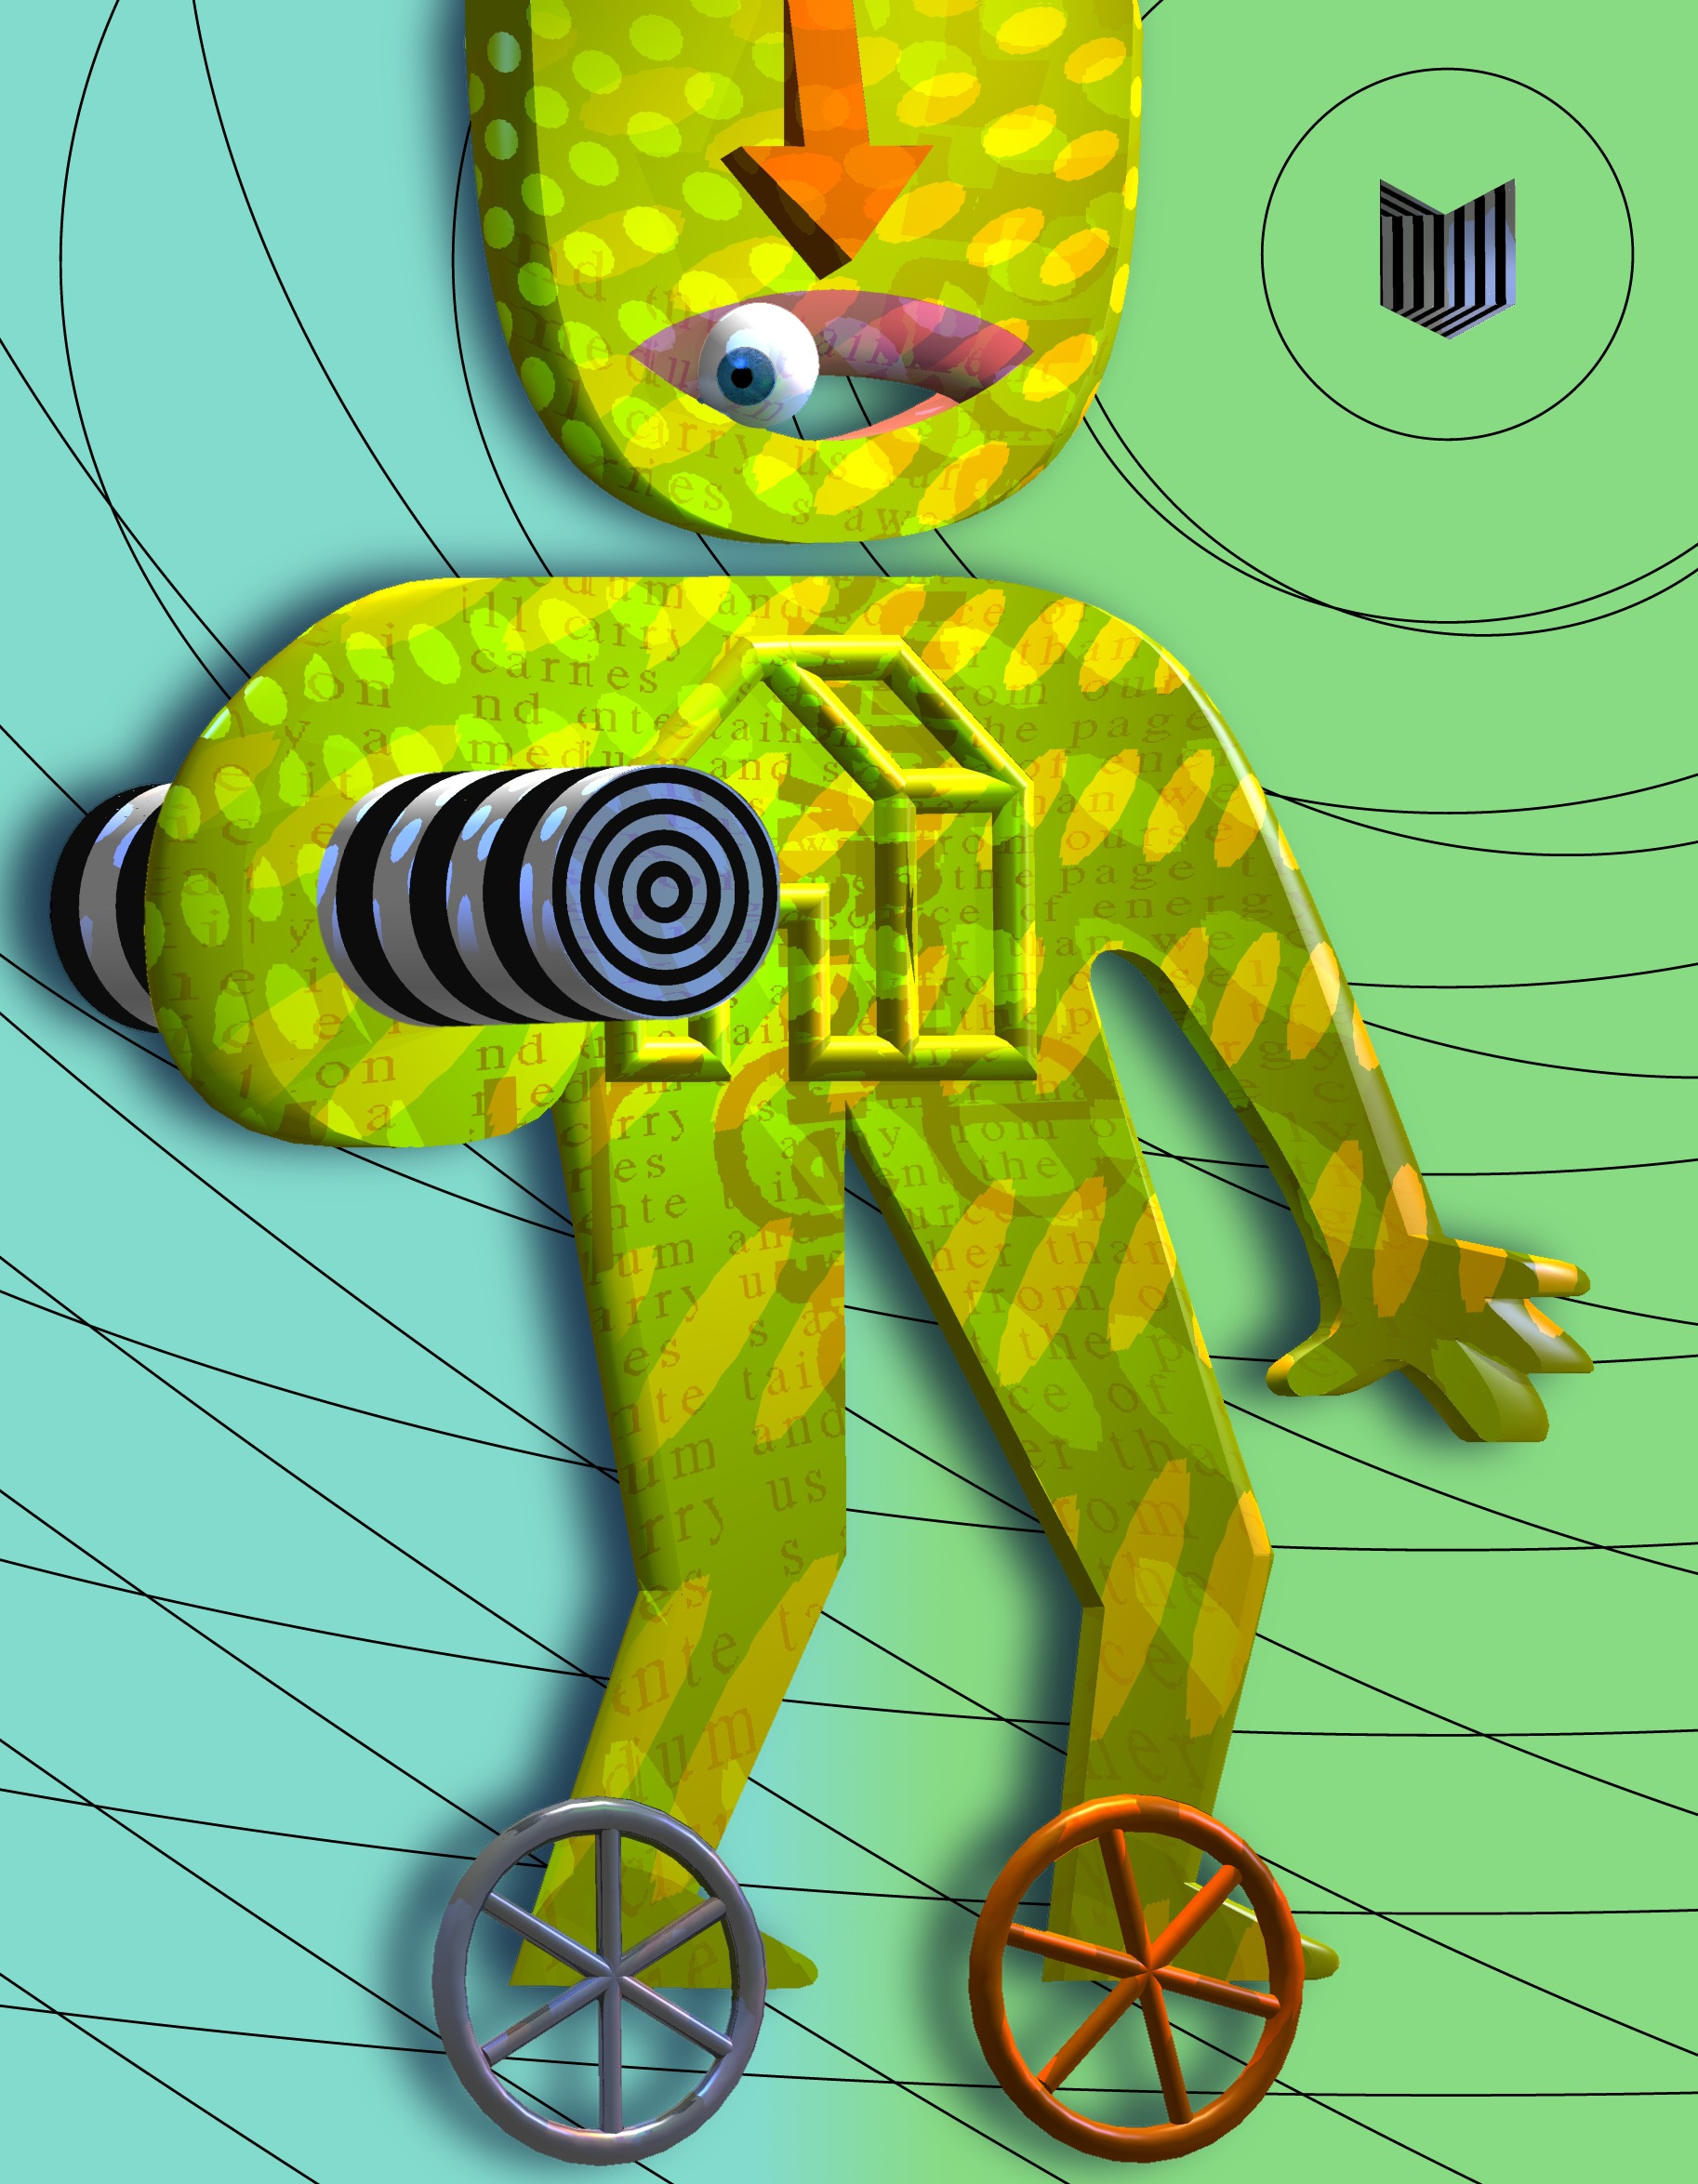 A yellow figure with an arrow for a nose and an eye in its mouth stands holding a spiral cylinder. In front of its feet are two wheels.